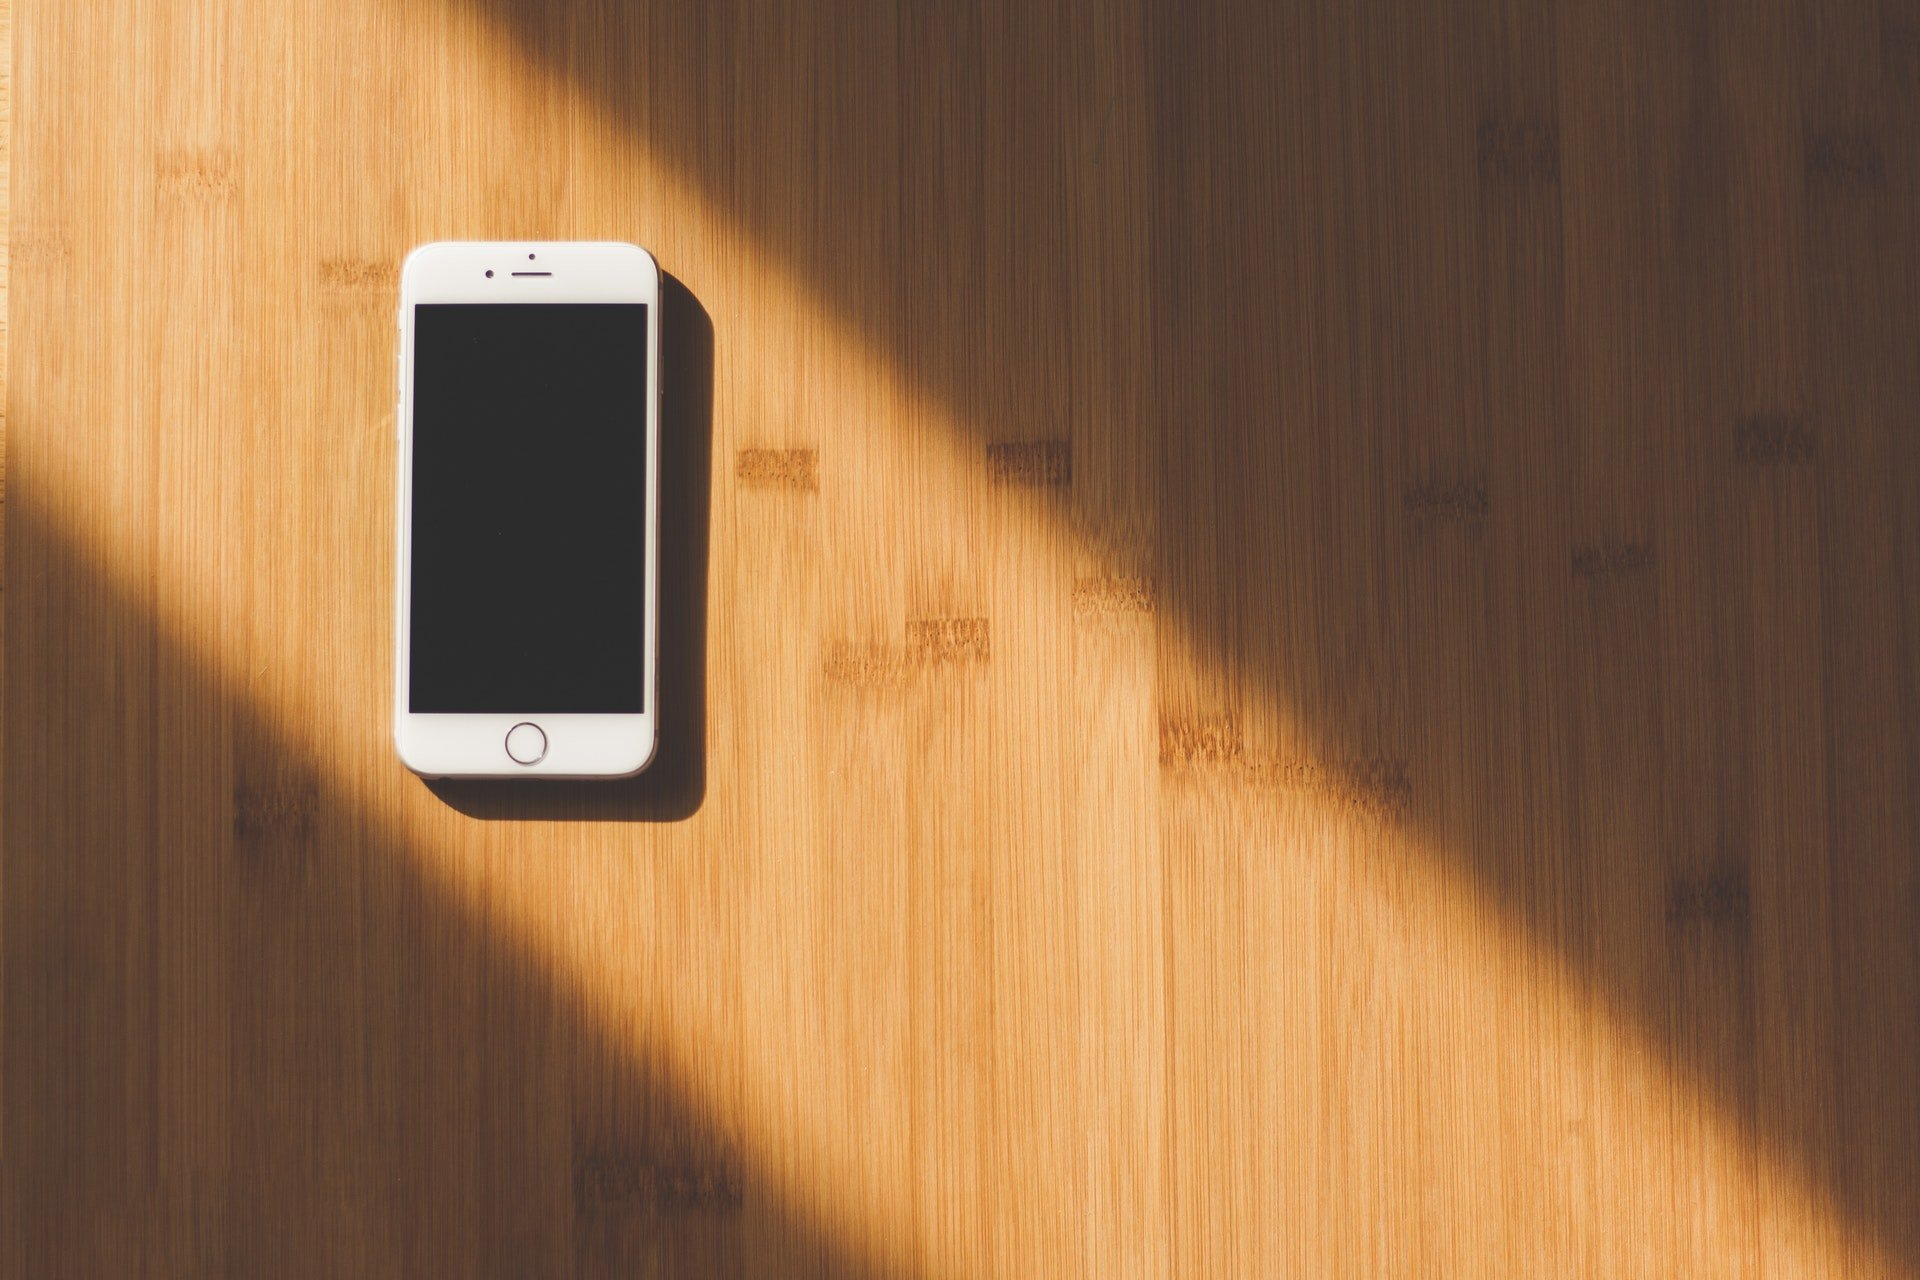 smartphone on floor in beam of light